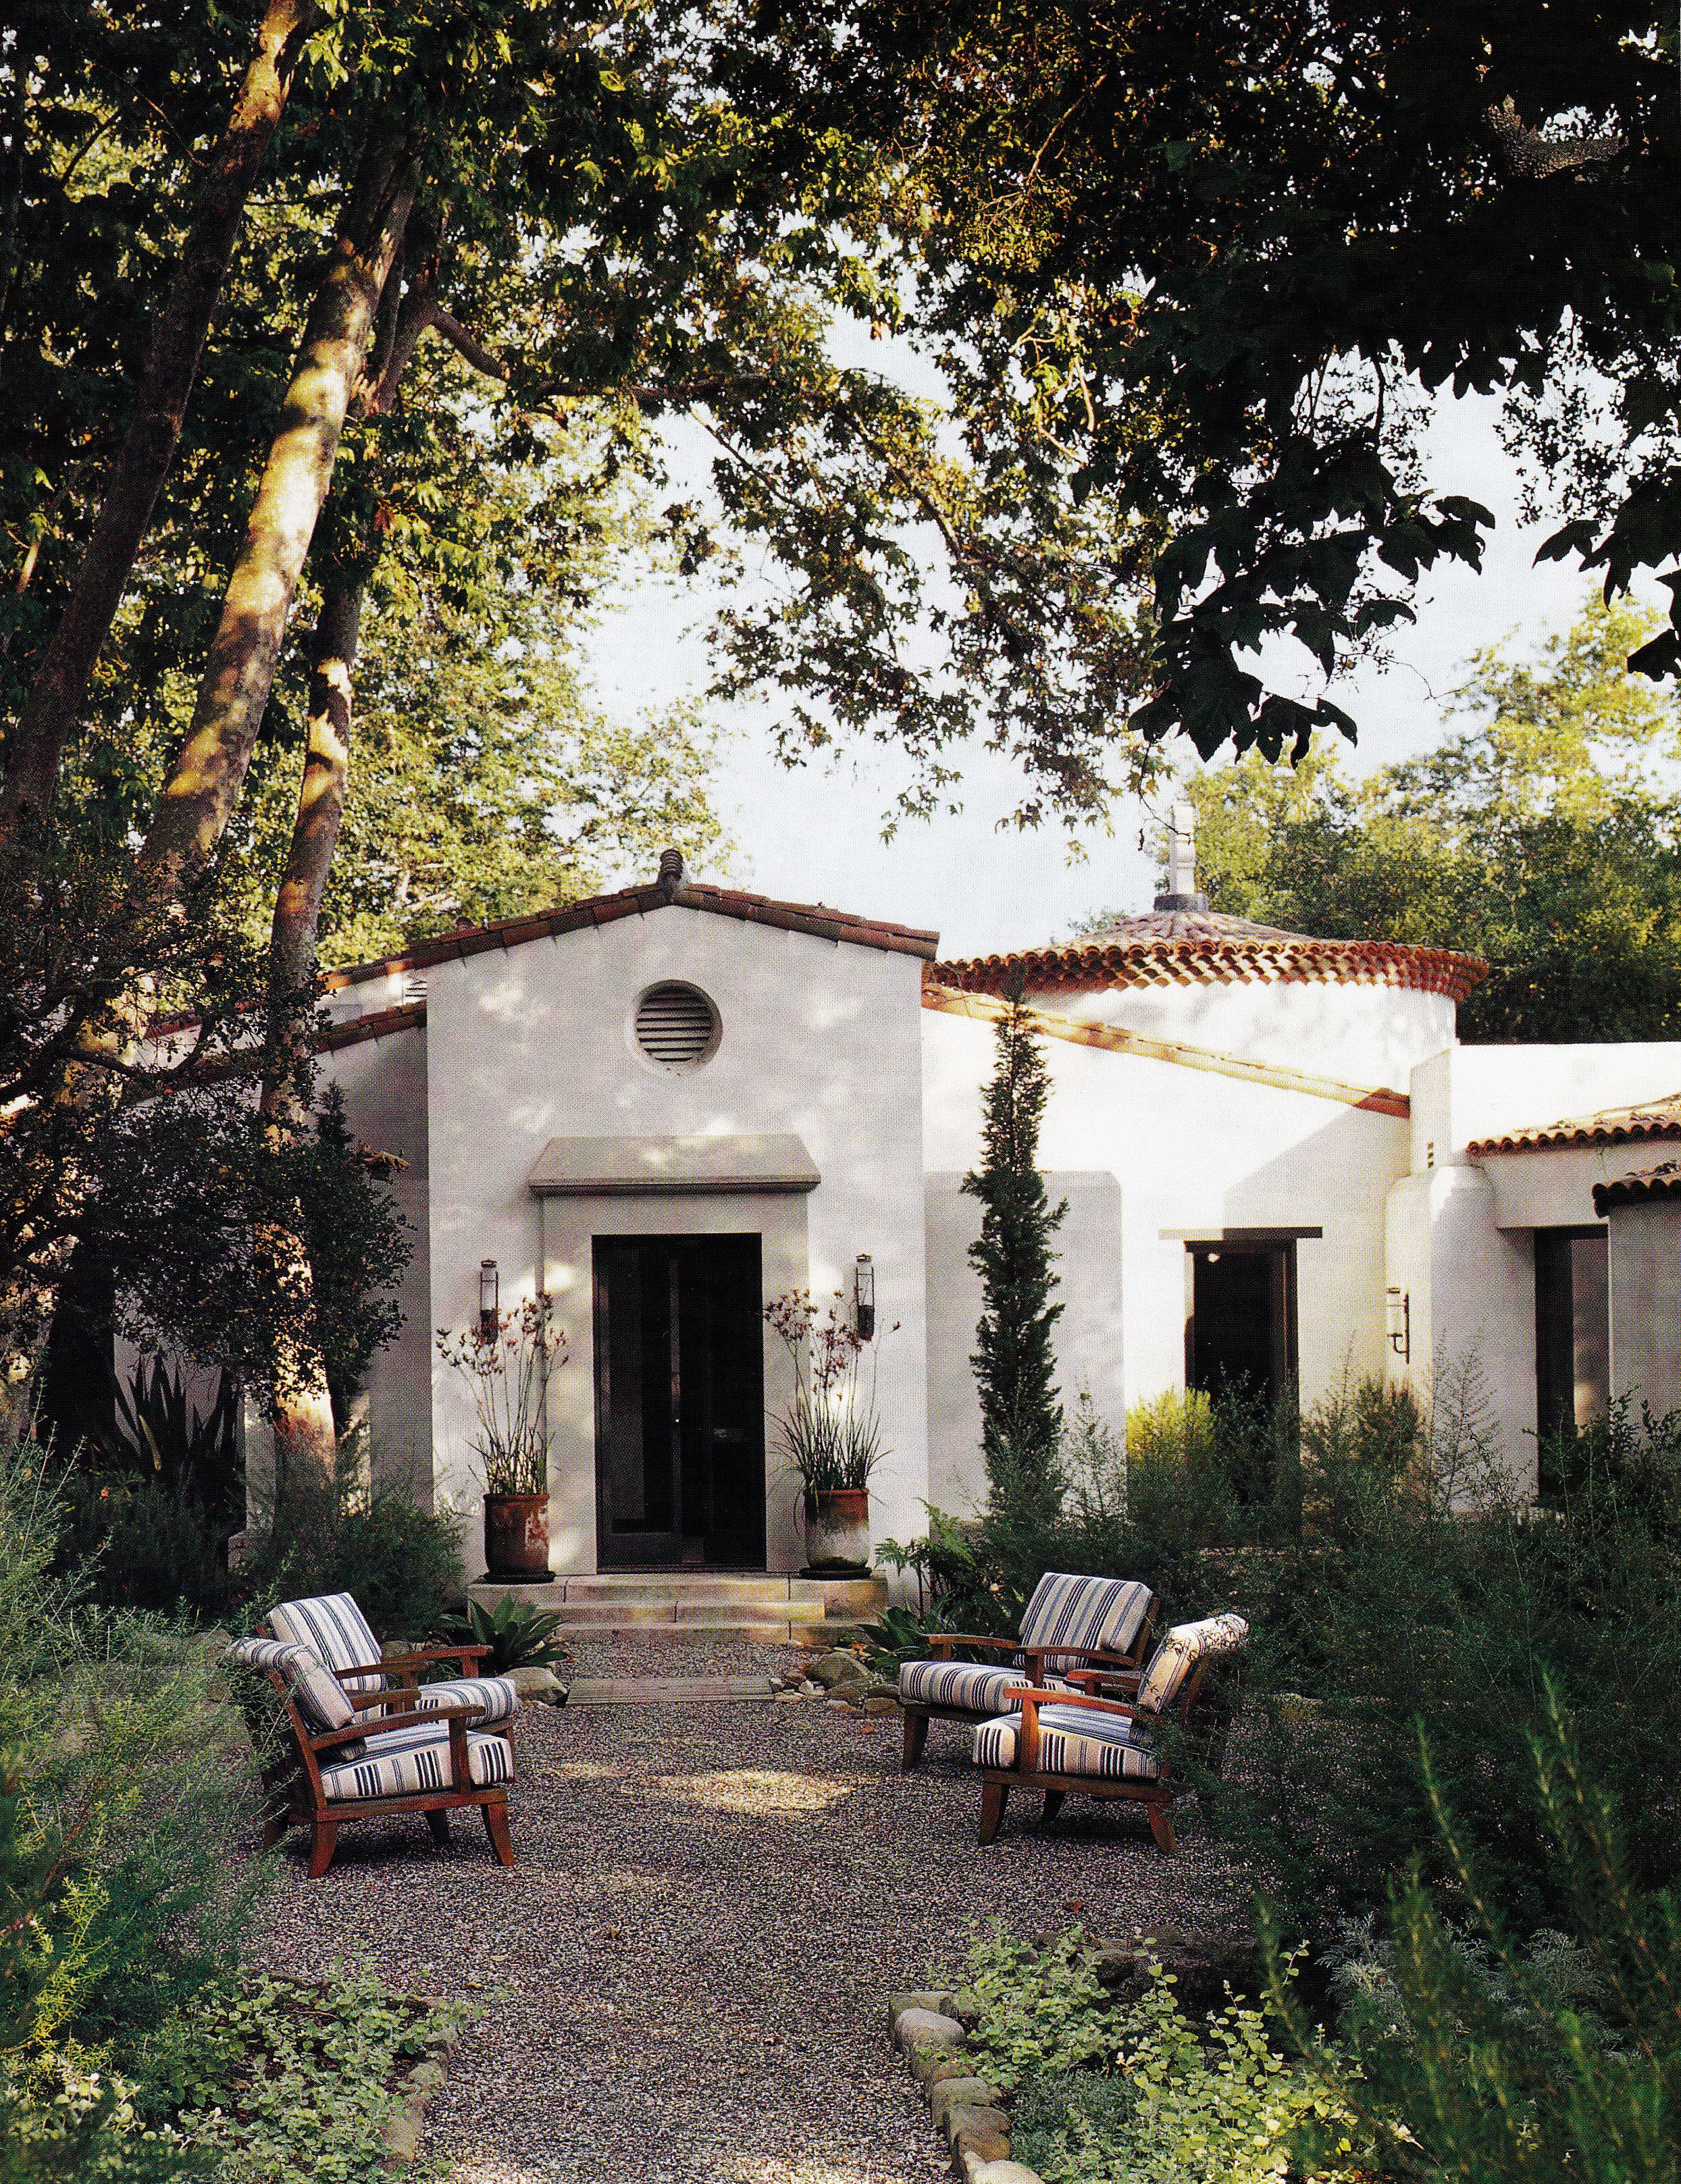 Mark Weaver S Montecito Home Courtyard With Crushed Stone Outdoor Sitting Area Fountain House Exterior Spanish Style Homes Spanish House